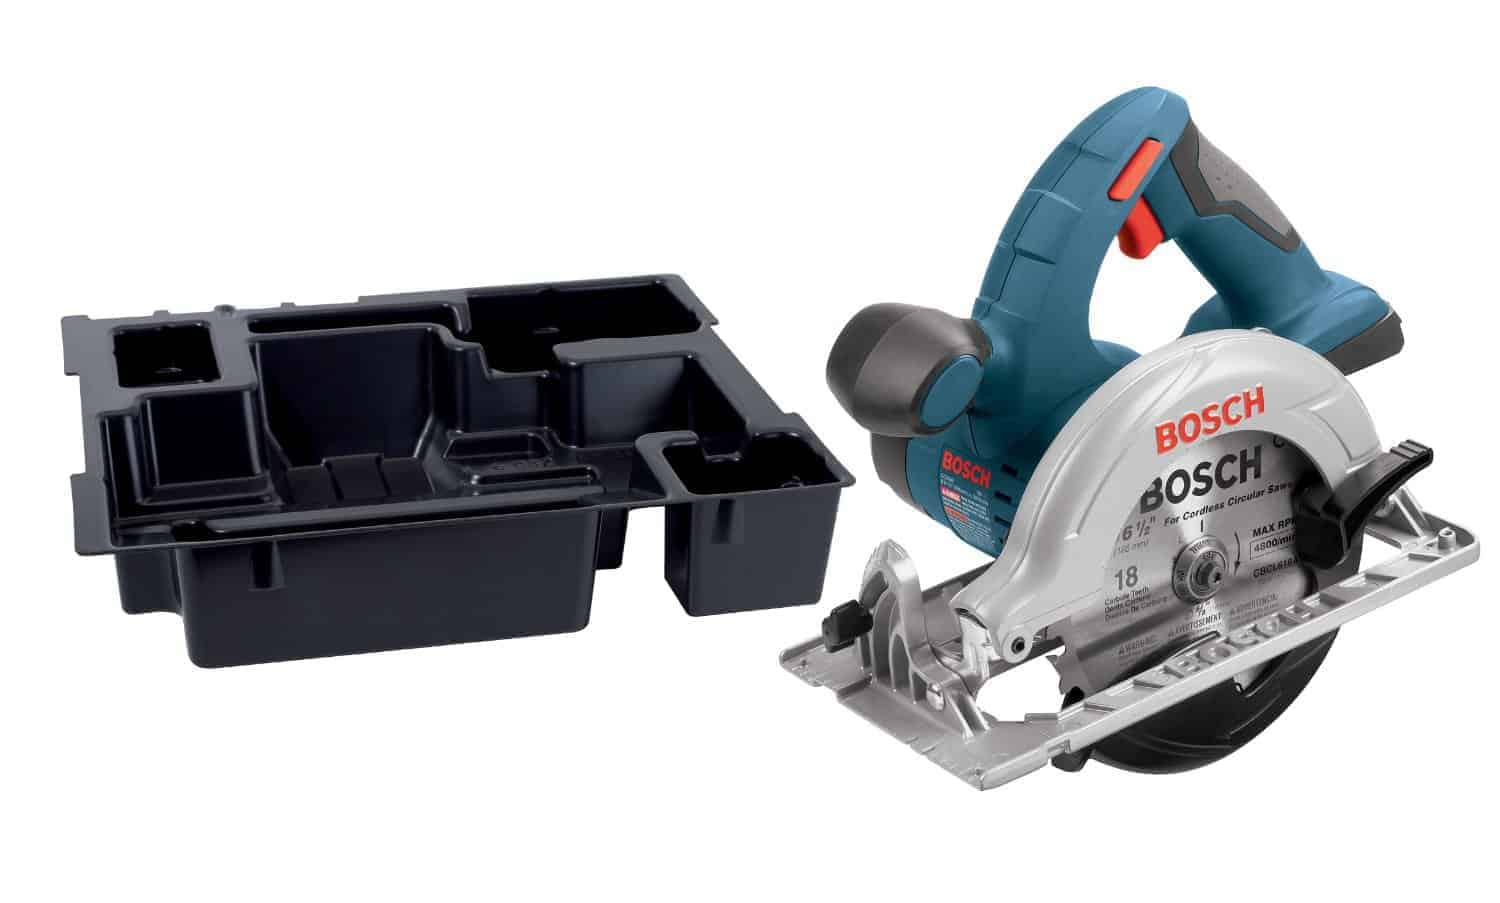 CCS180BN Bare-Tool 18-Volt Lithium-Ion 6-1:2-Inch Circular Saw and Exact-Fit Tool Insert Tray review